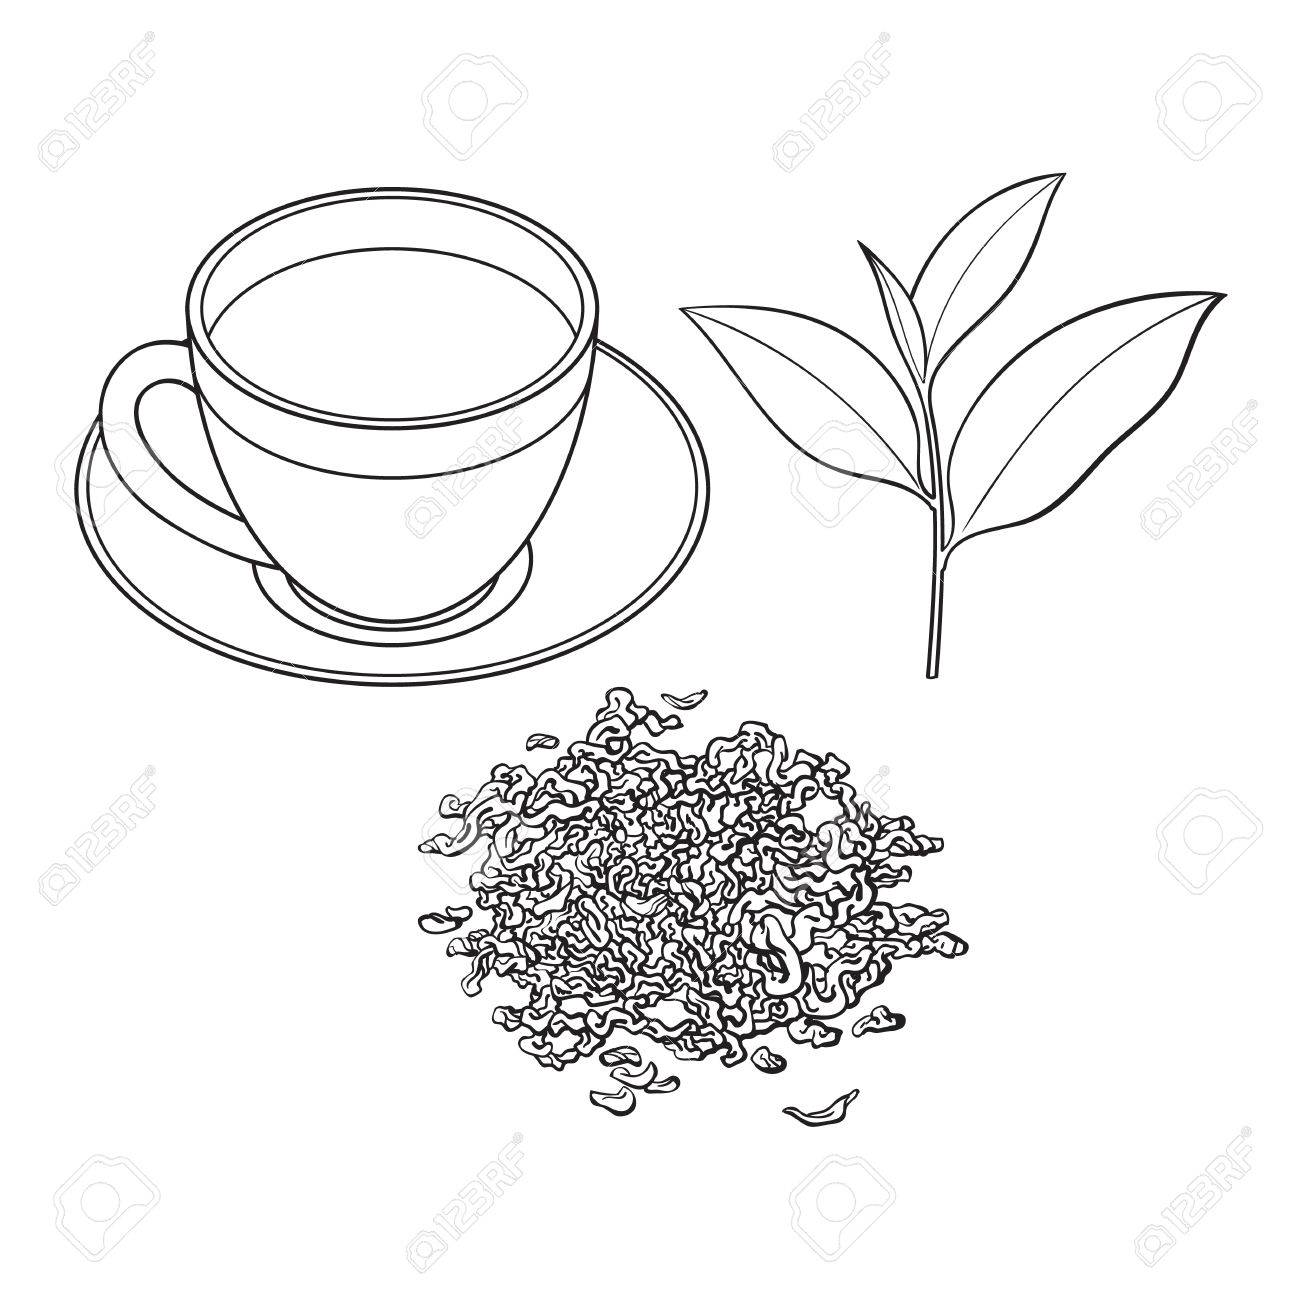 Tea Cup Fresh And Dry Leaves Sketch Vector Illustration Isolated Royalty Free Cliparts Vectors And Stock Illustration Image 84899724